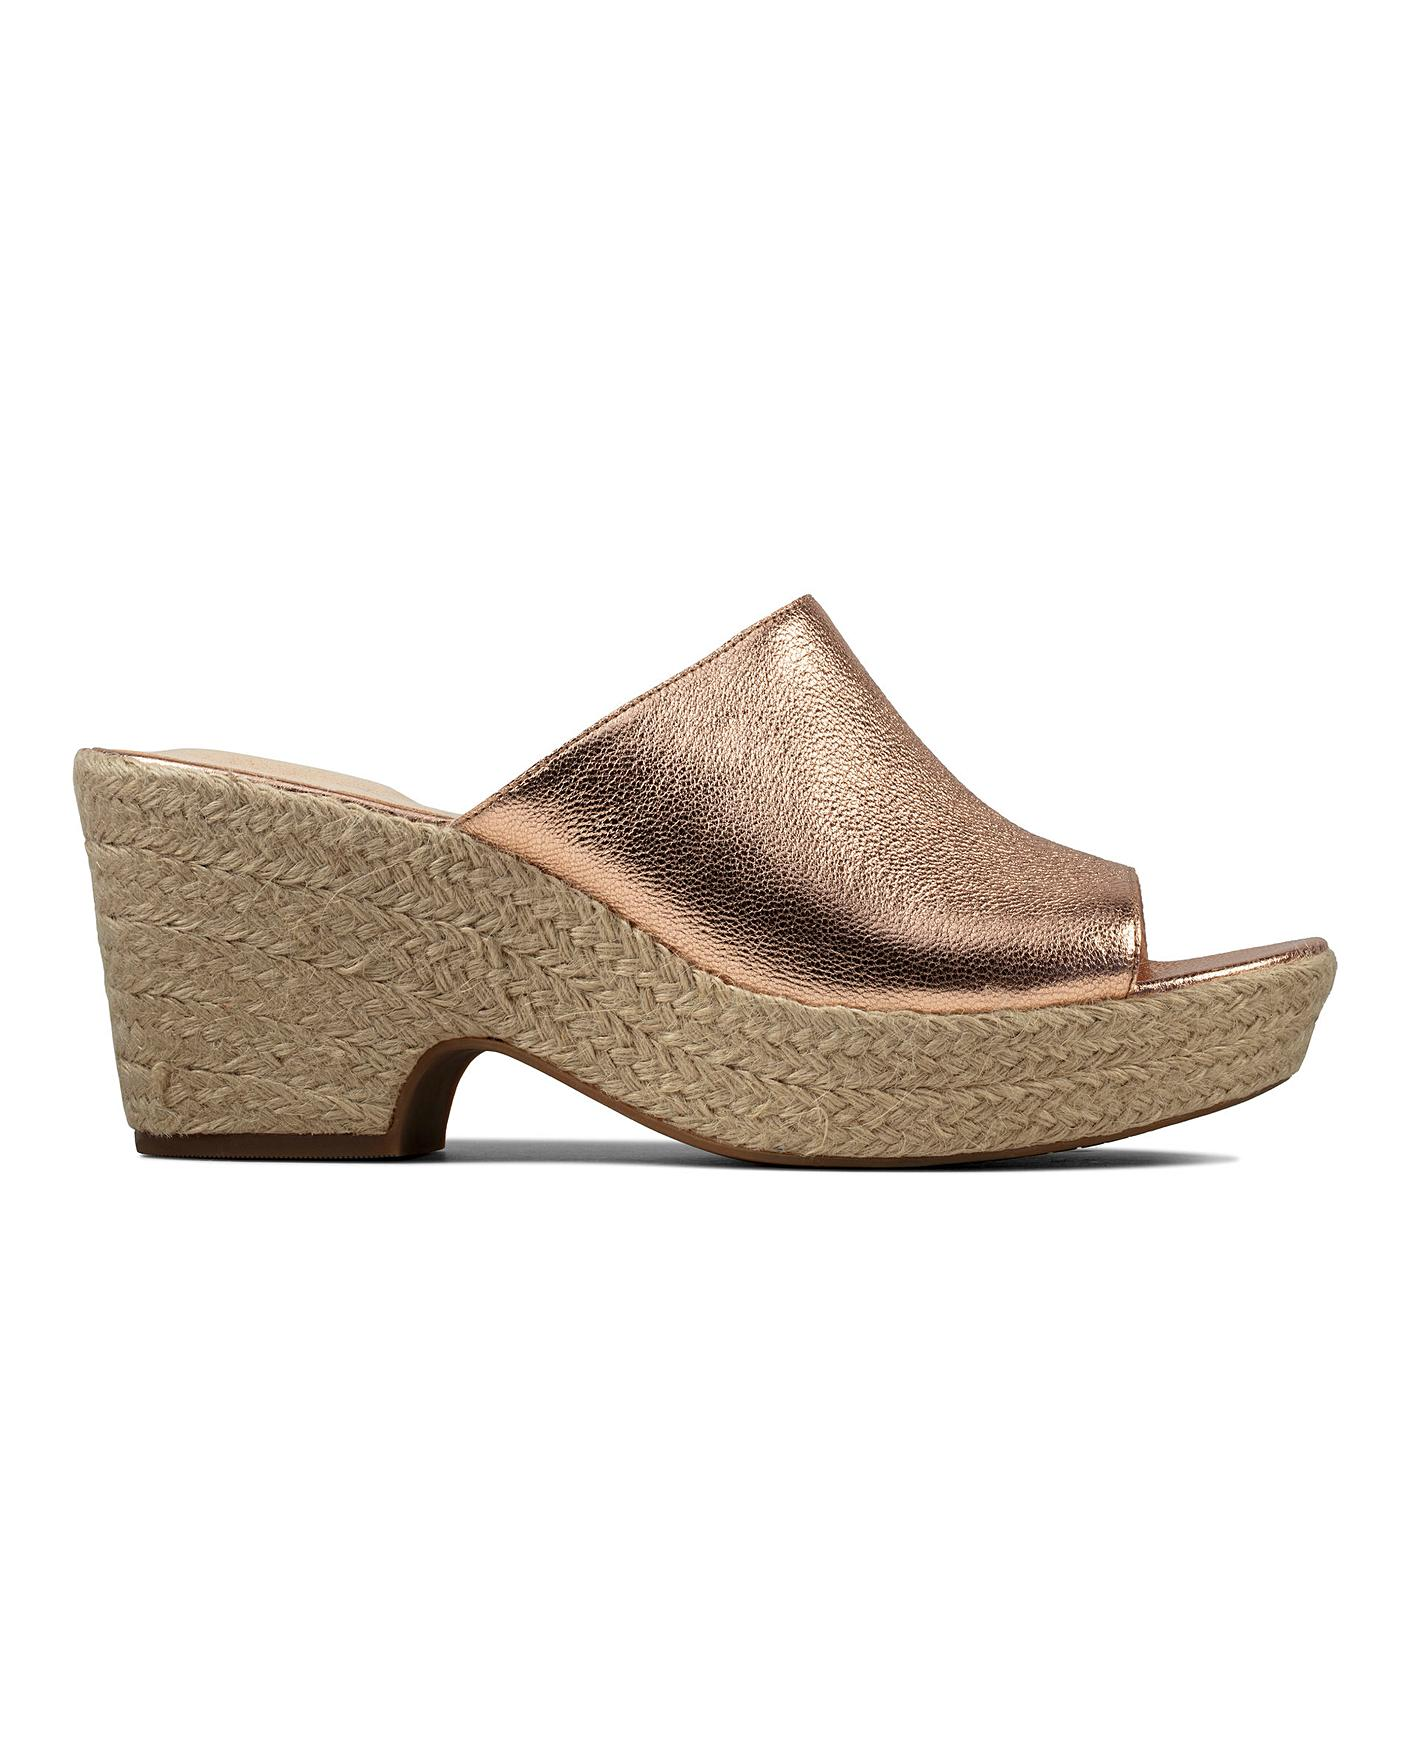 Clarks Wedge Sandals | Simply Be